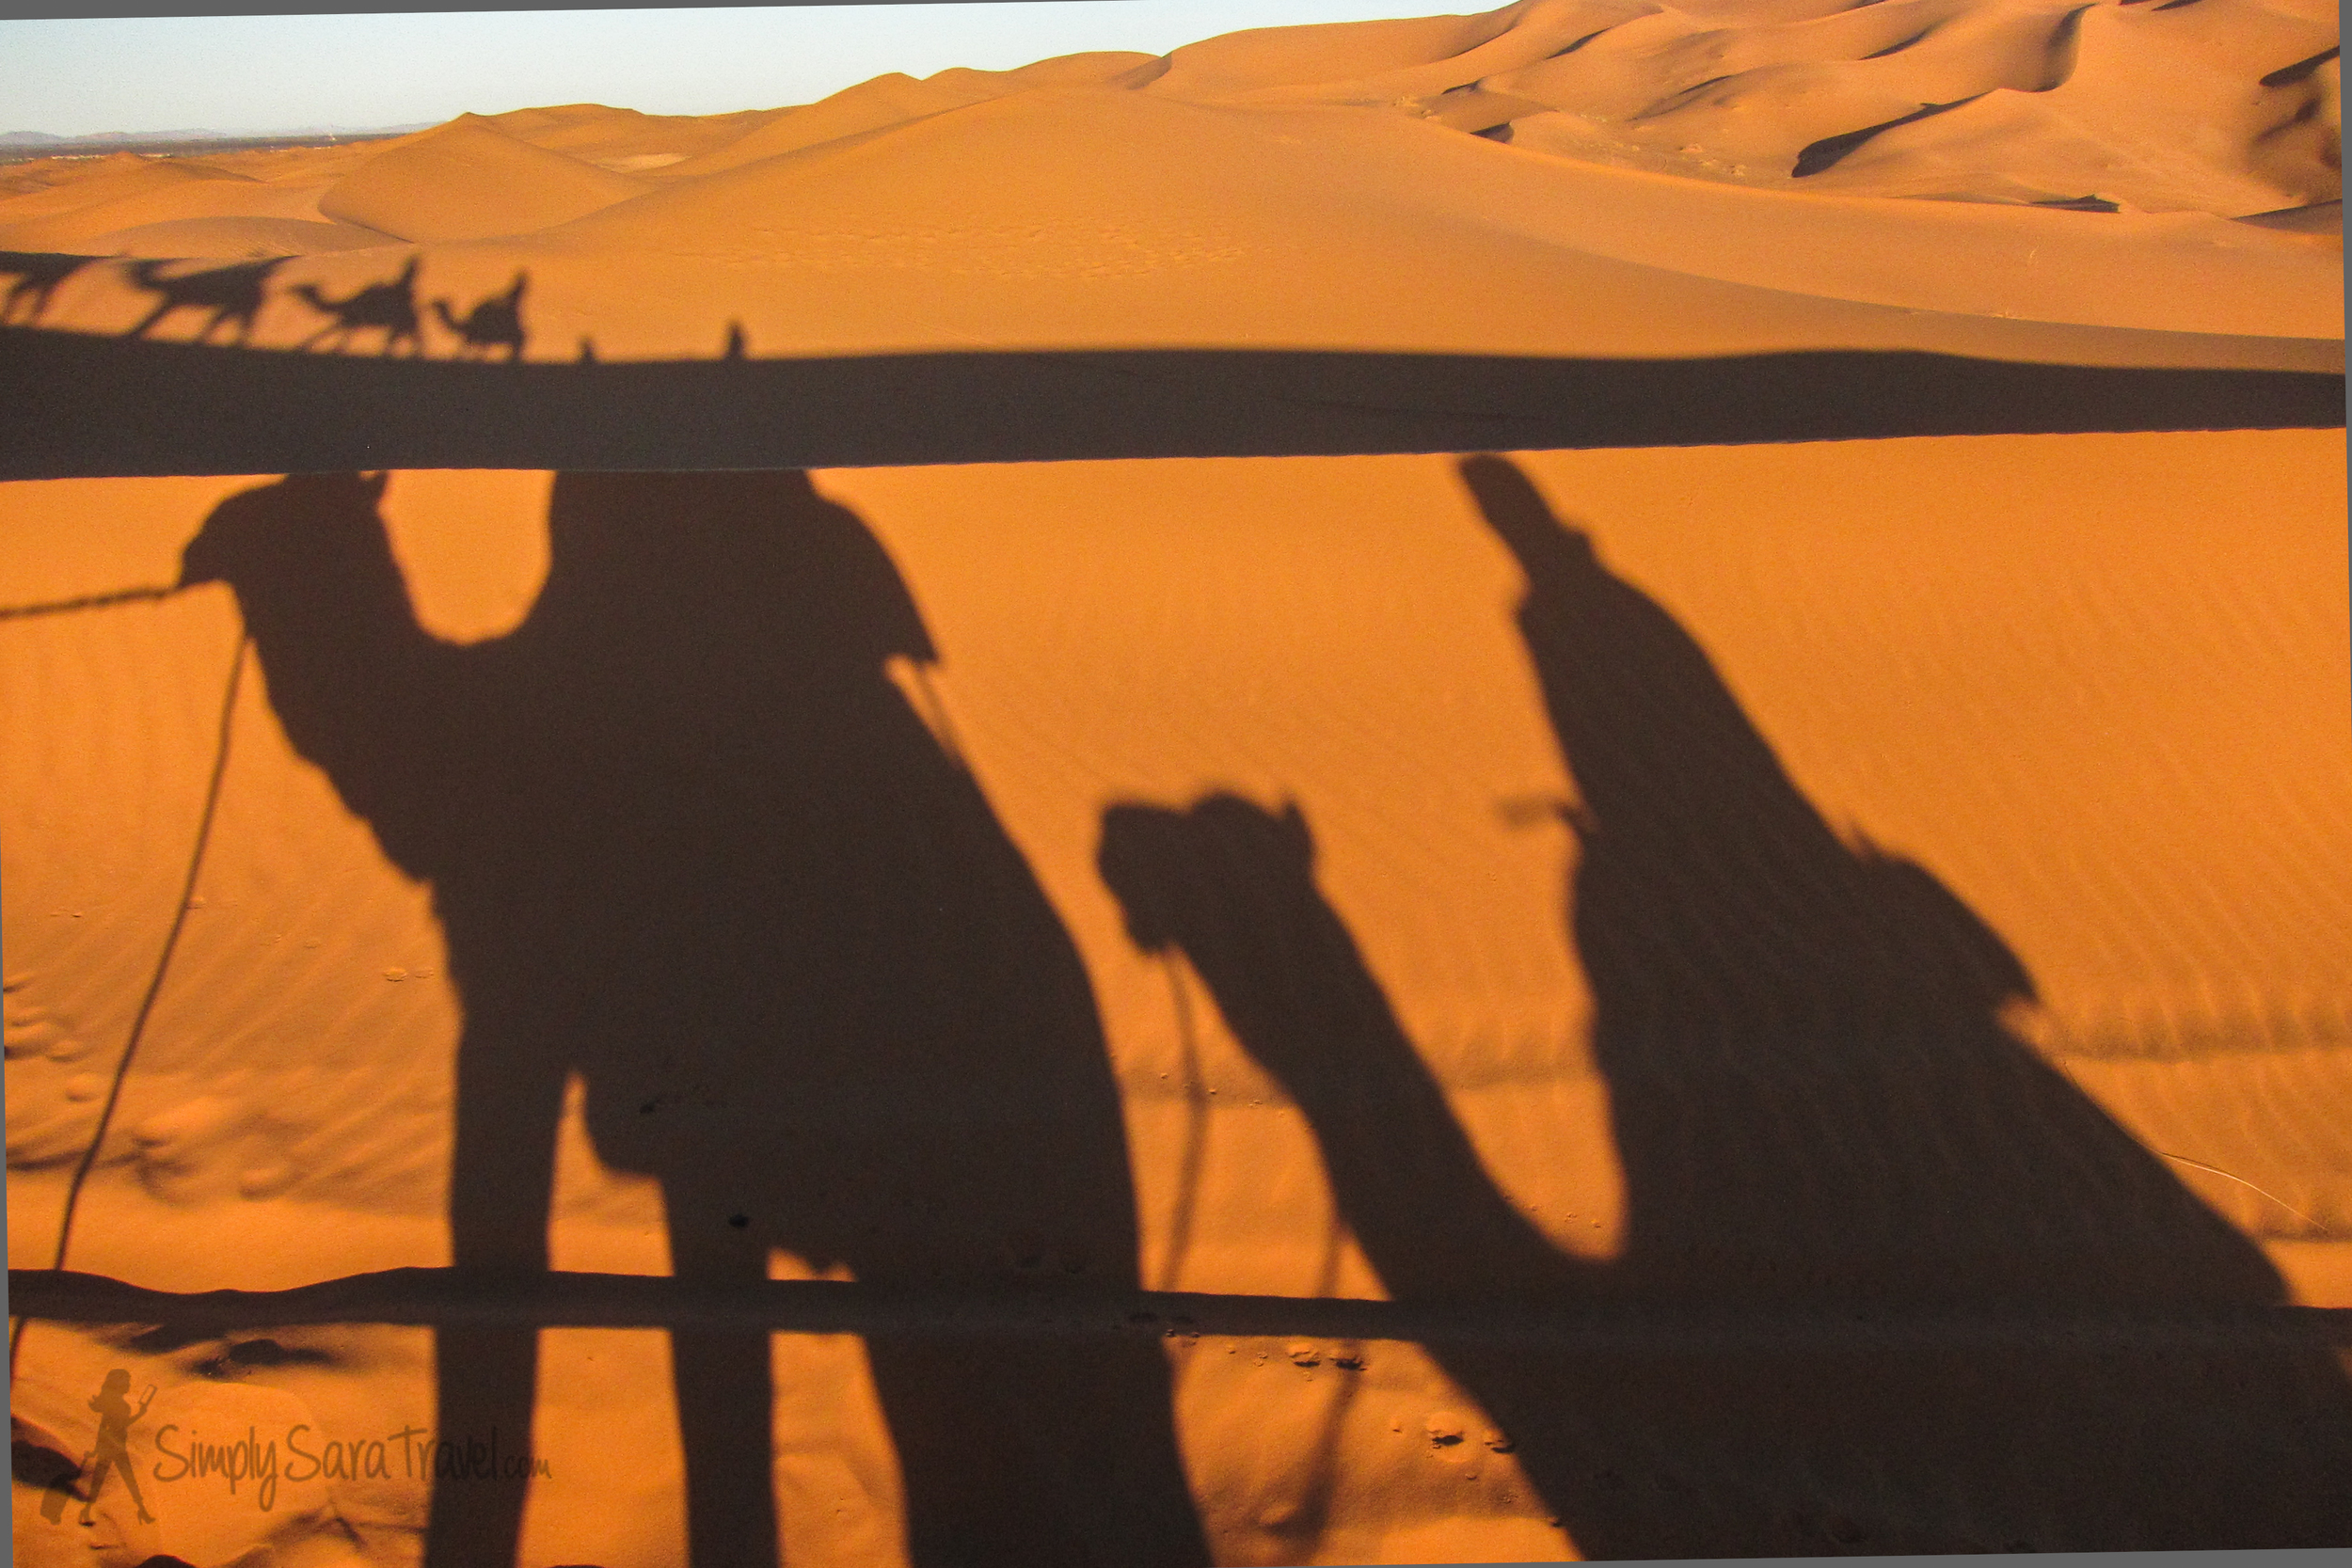 The next day, riding the camels back after sunrise. We were in the area with the highest sand dunes in northern Africa!